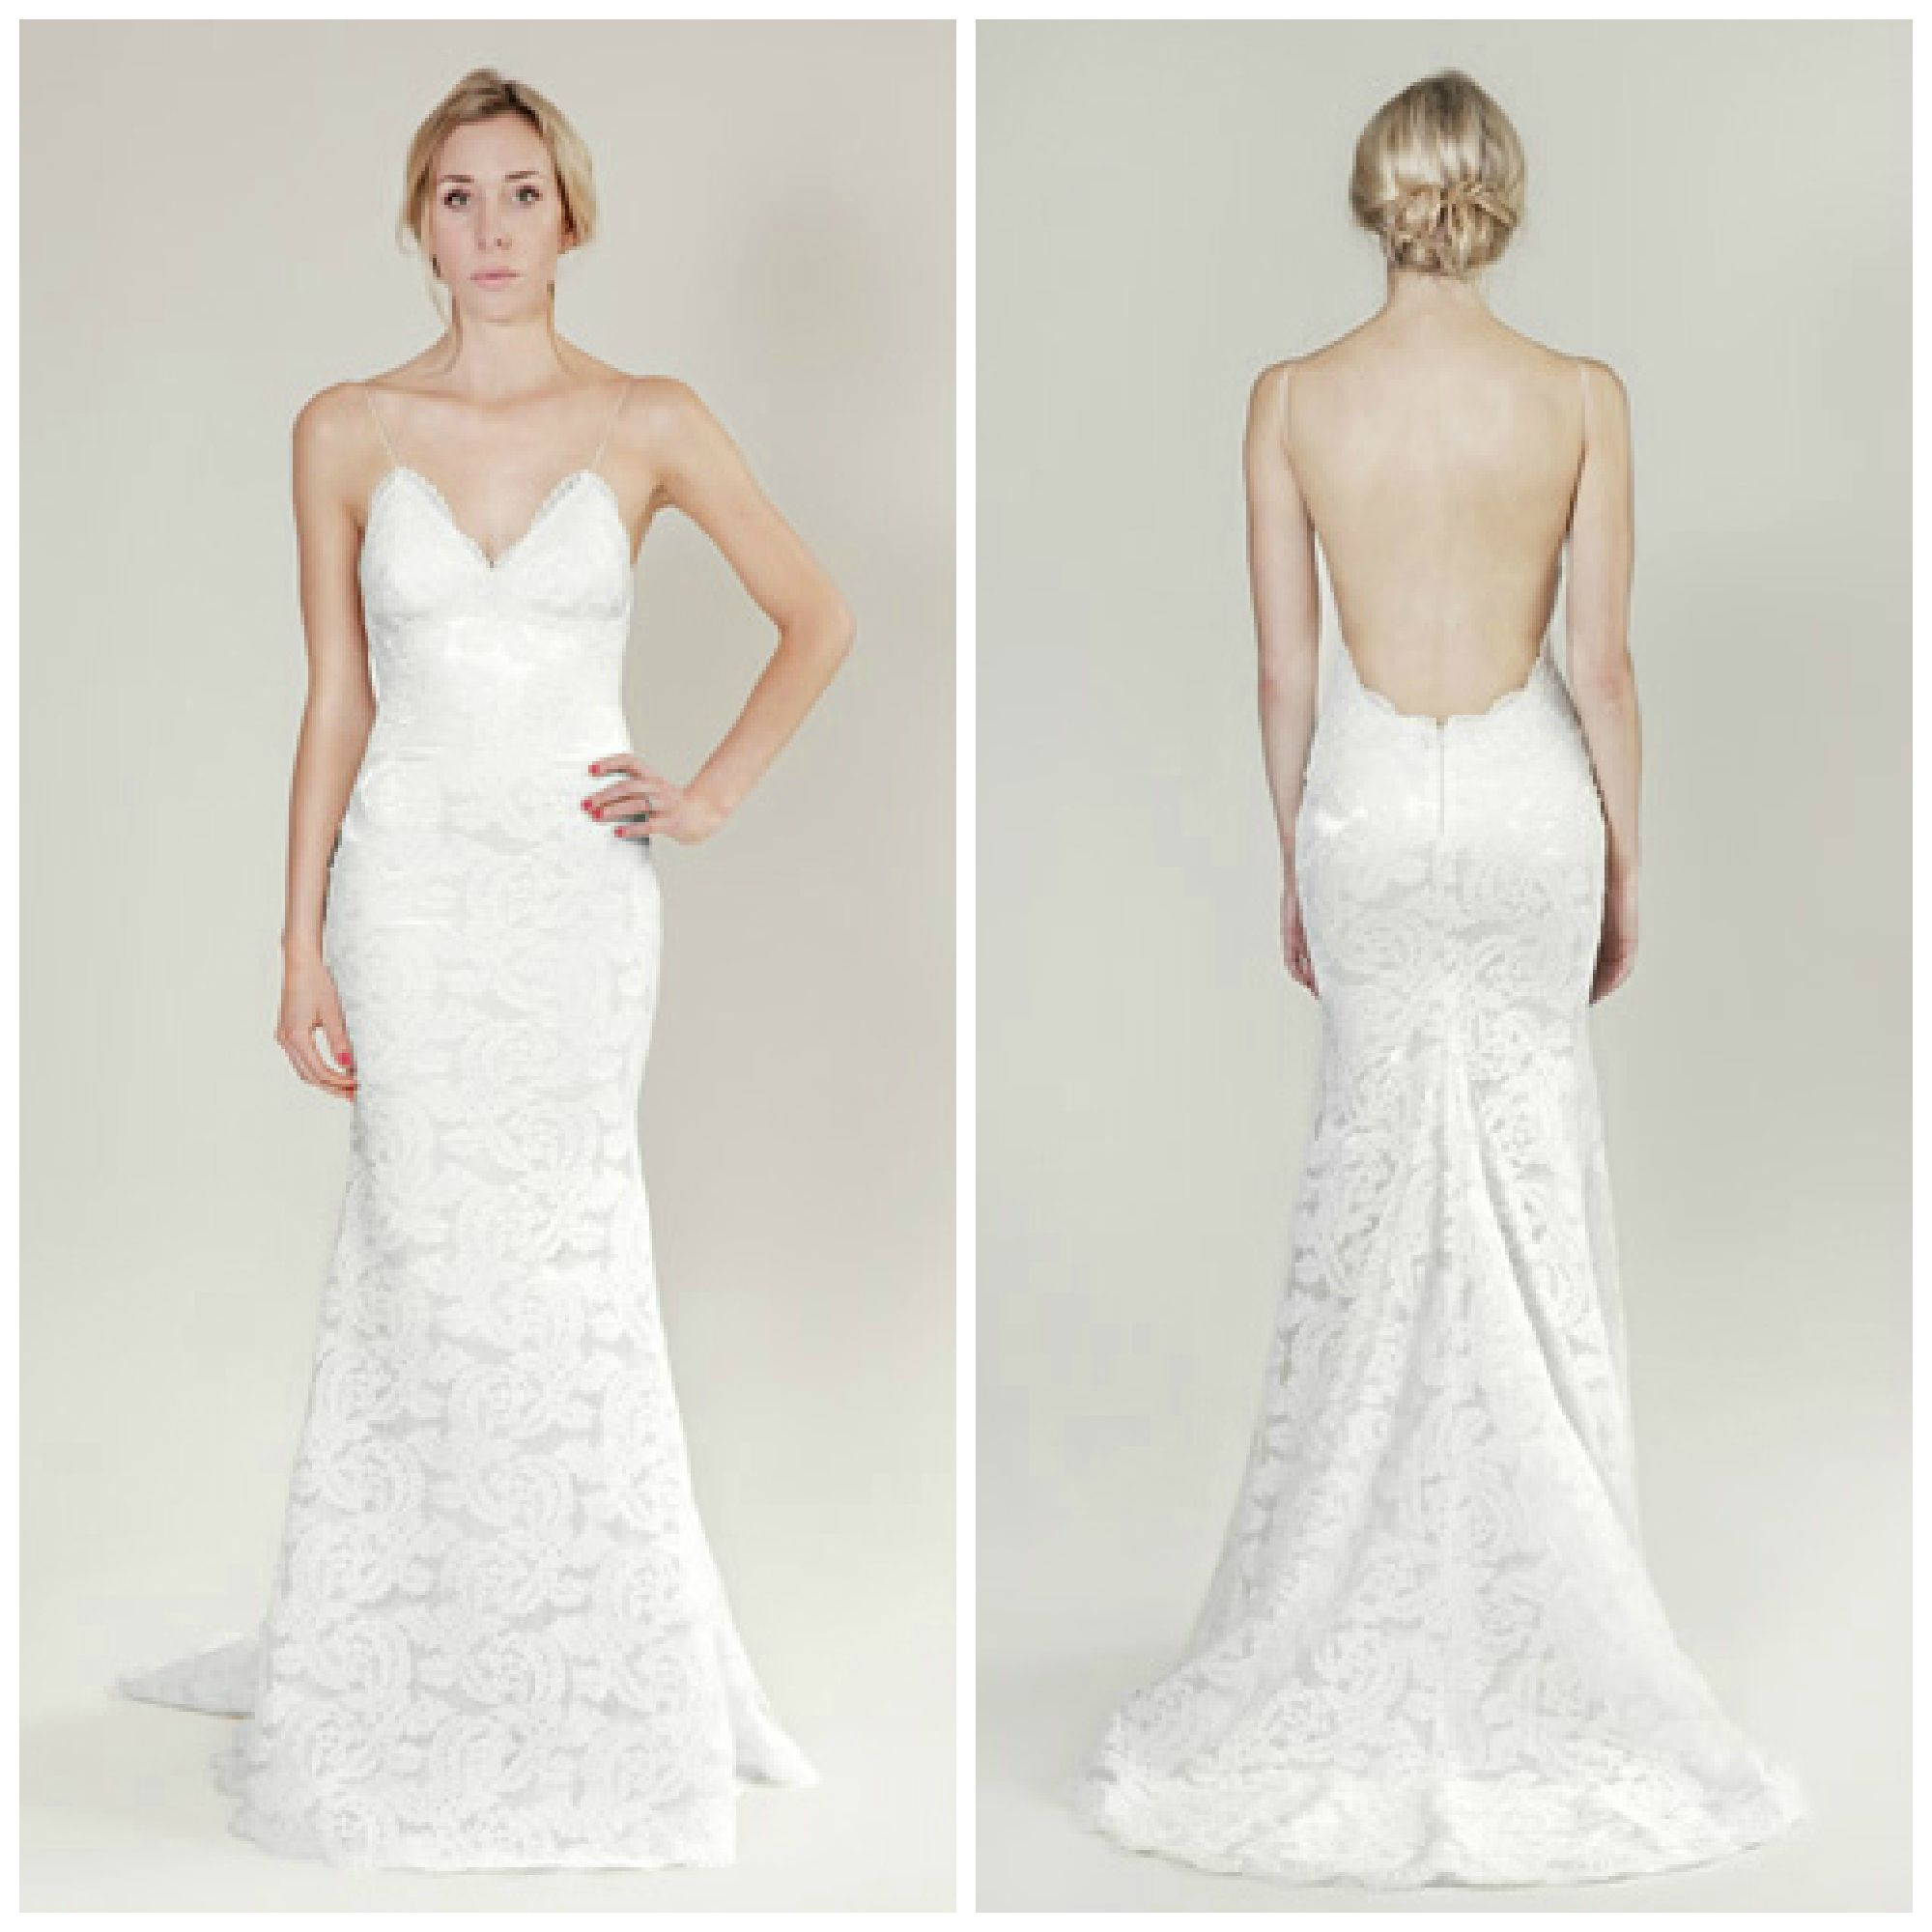 40+ Stunning Wedding Dresses 2014 2015 : Lace Backless V Neck Wedding Gown